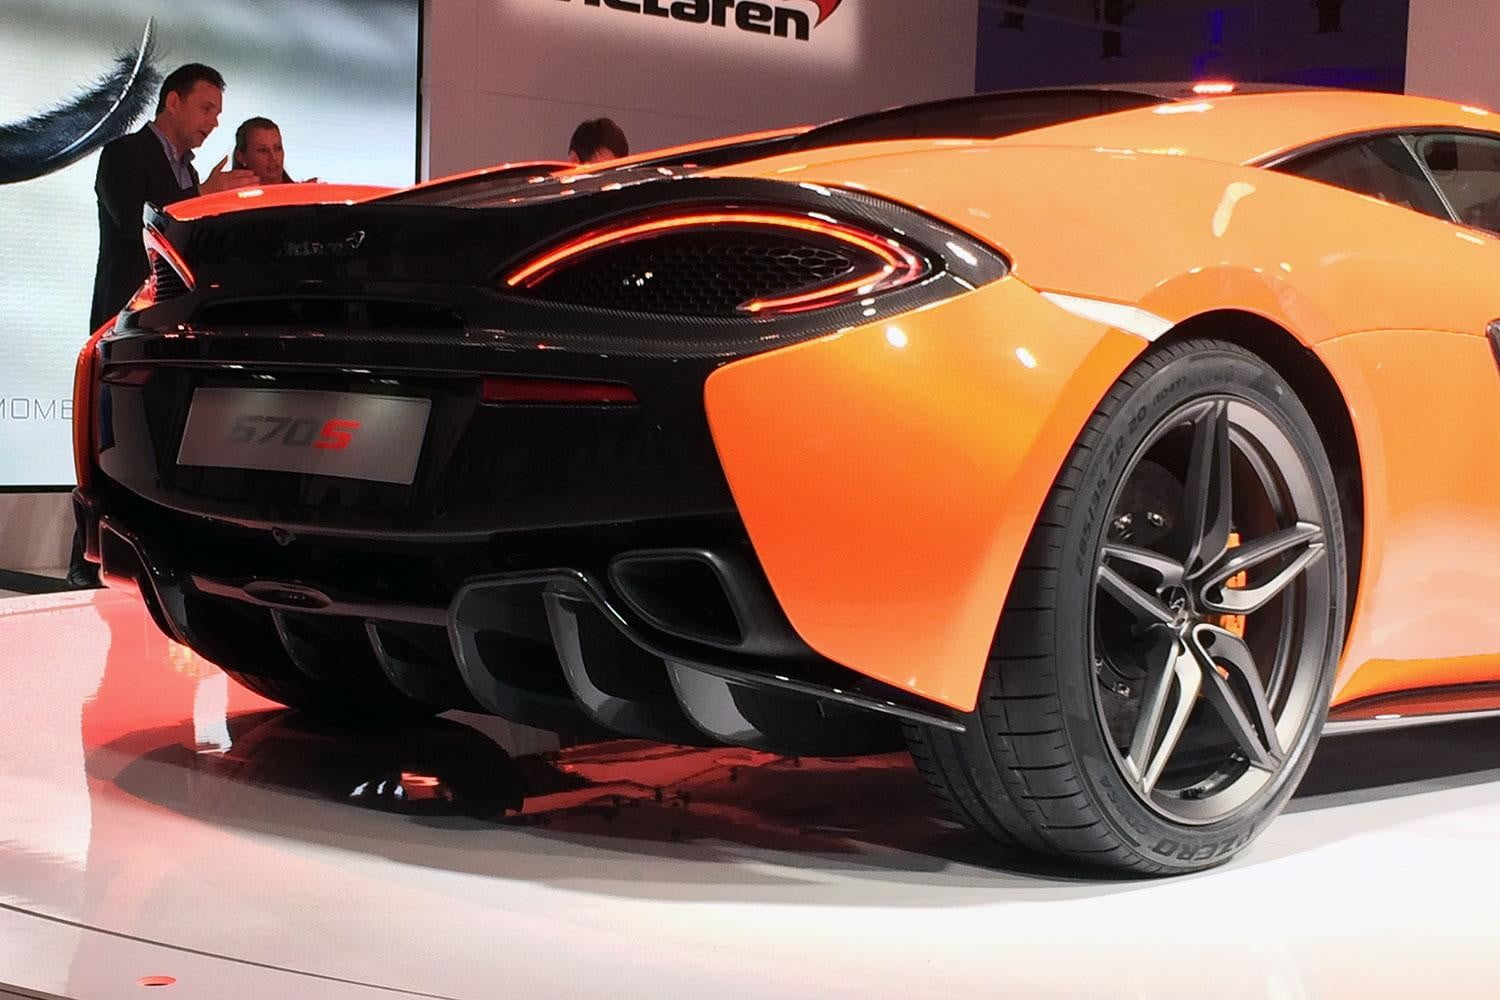 McLaren 570S Reveal back section angle